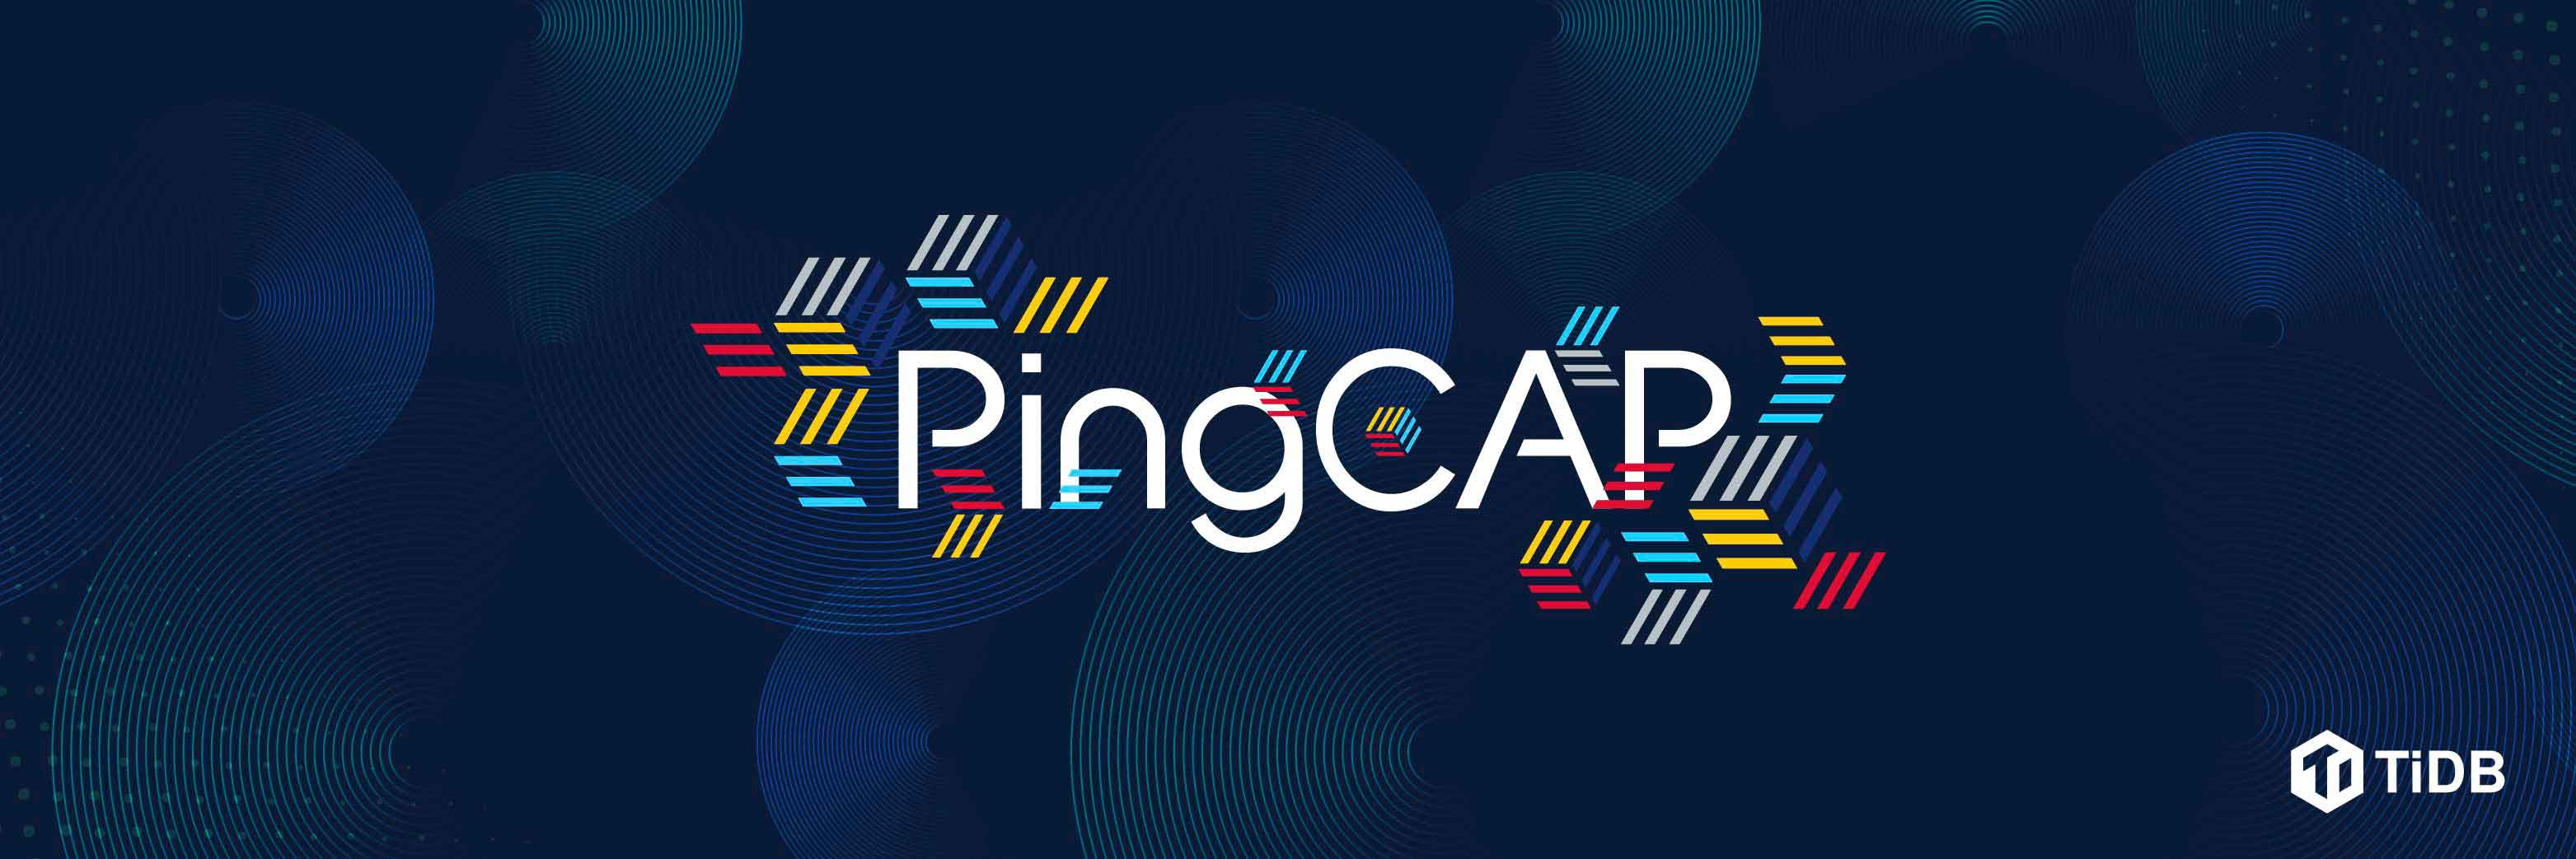 PingCAP, the Company Behind TiDB, Raises $270 Million in Series D Funding